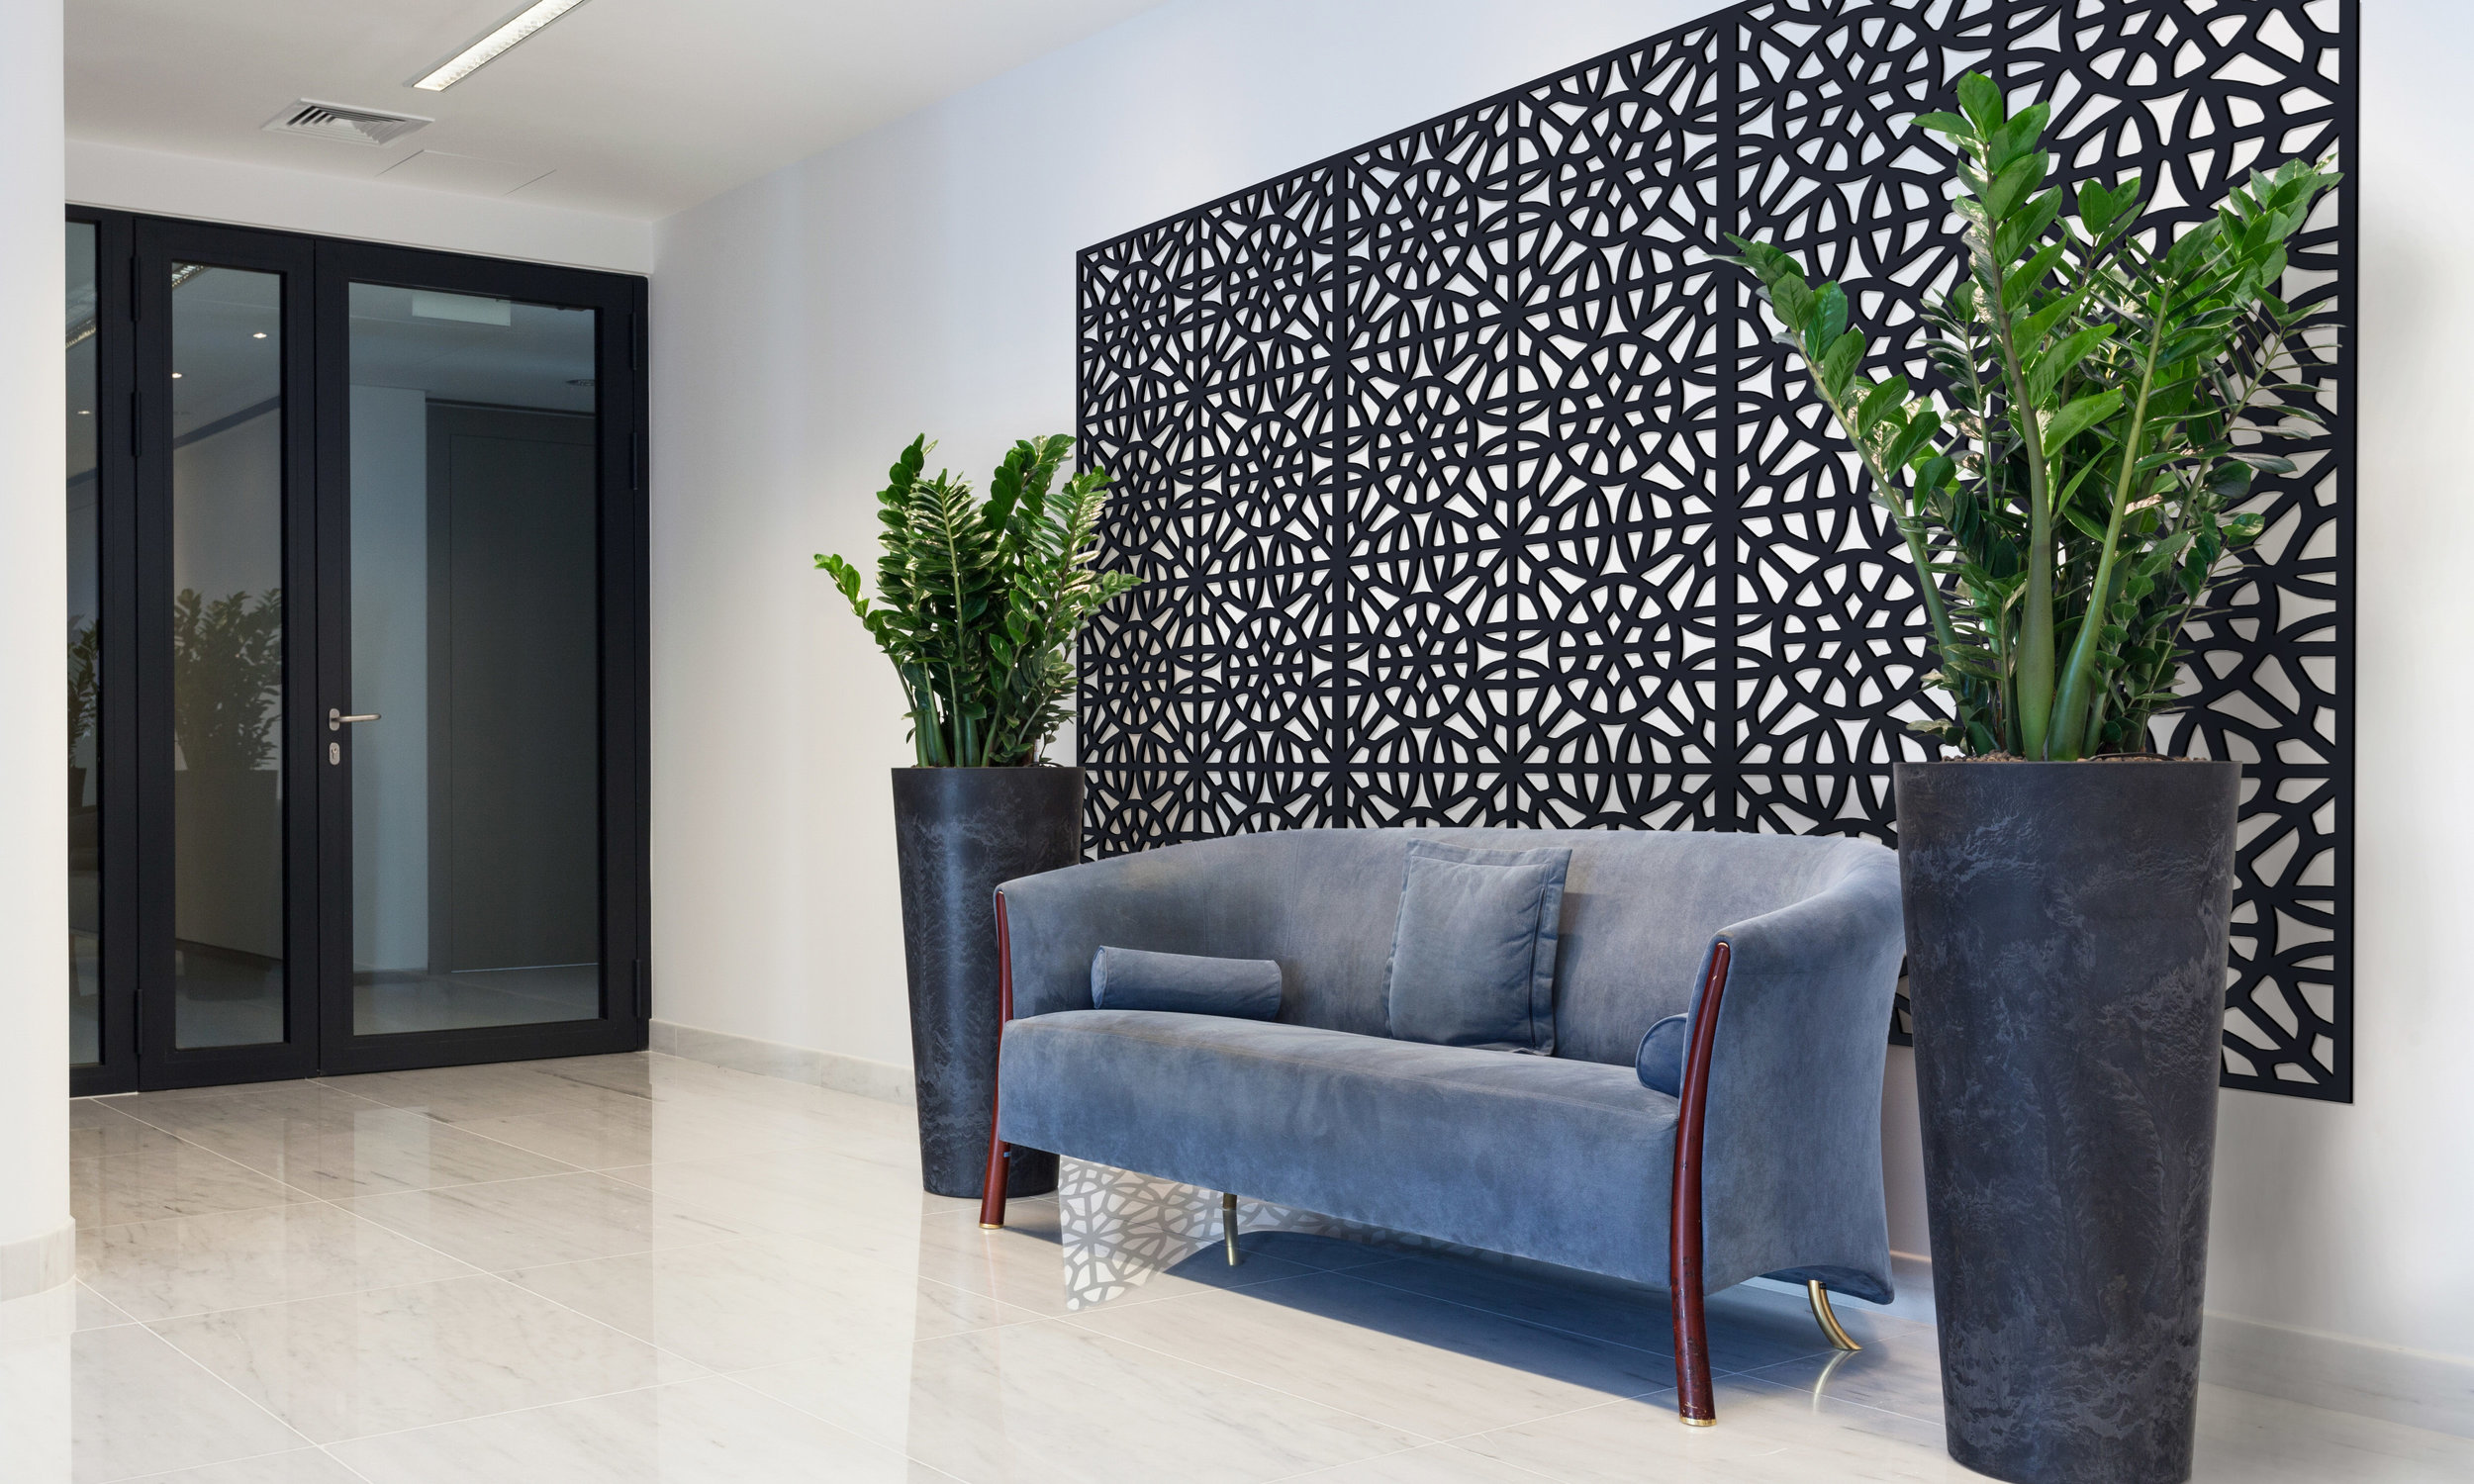 Installation Rendering B   Brooklyn decorative office wall panel - painted